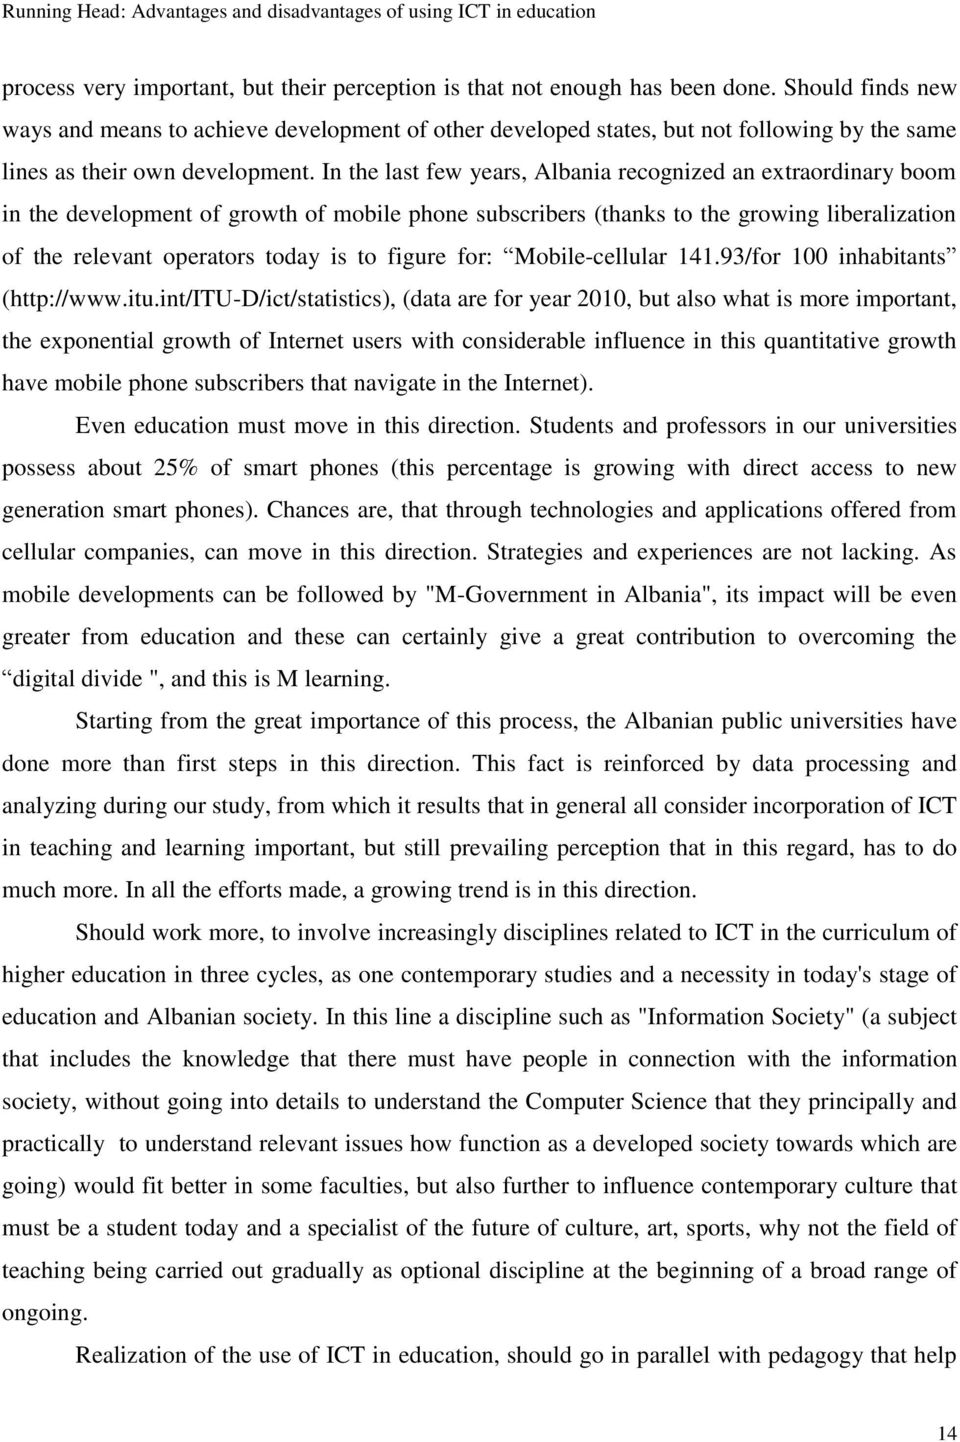 advantages and disadvantages of using ict in education pdf in the last few years recognized an extraordinary boom in the development of growth